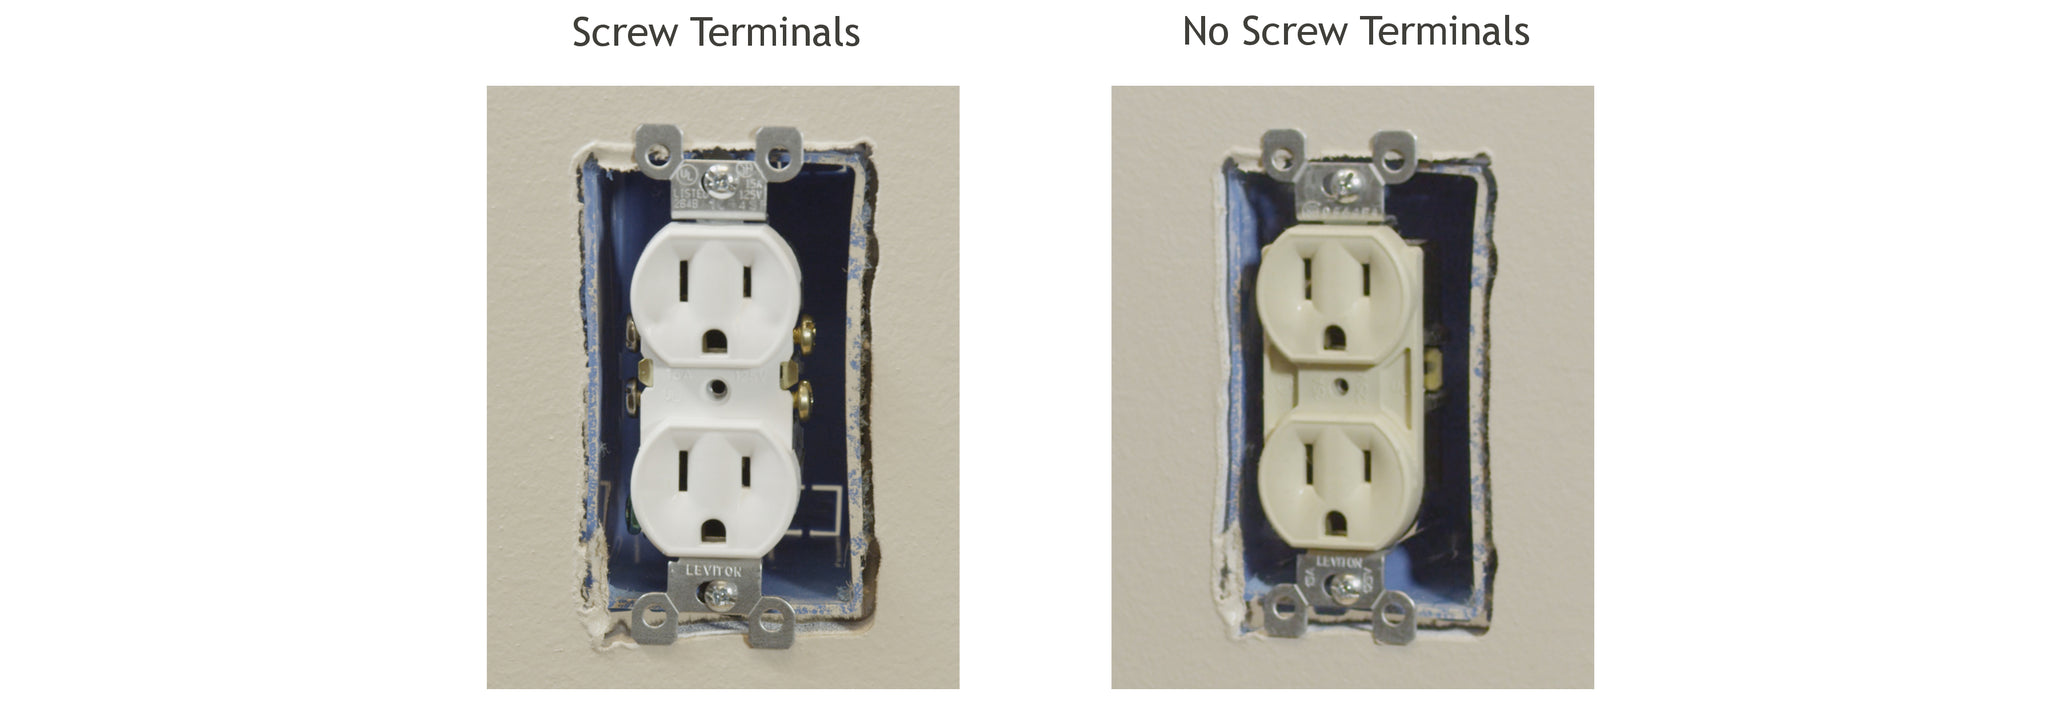 Install And Troubleshooting 1 Snappower Using A Screw Or Plug Against On Wiring Socket South Africa If It Does Not Have Side Terminals You Will Need To Select Another Outlet Inside The Home Use With Your Snaprays Guidelight